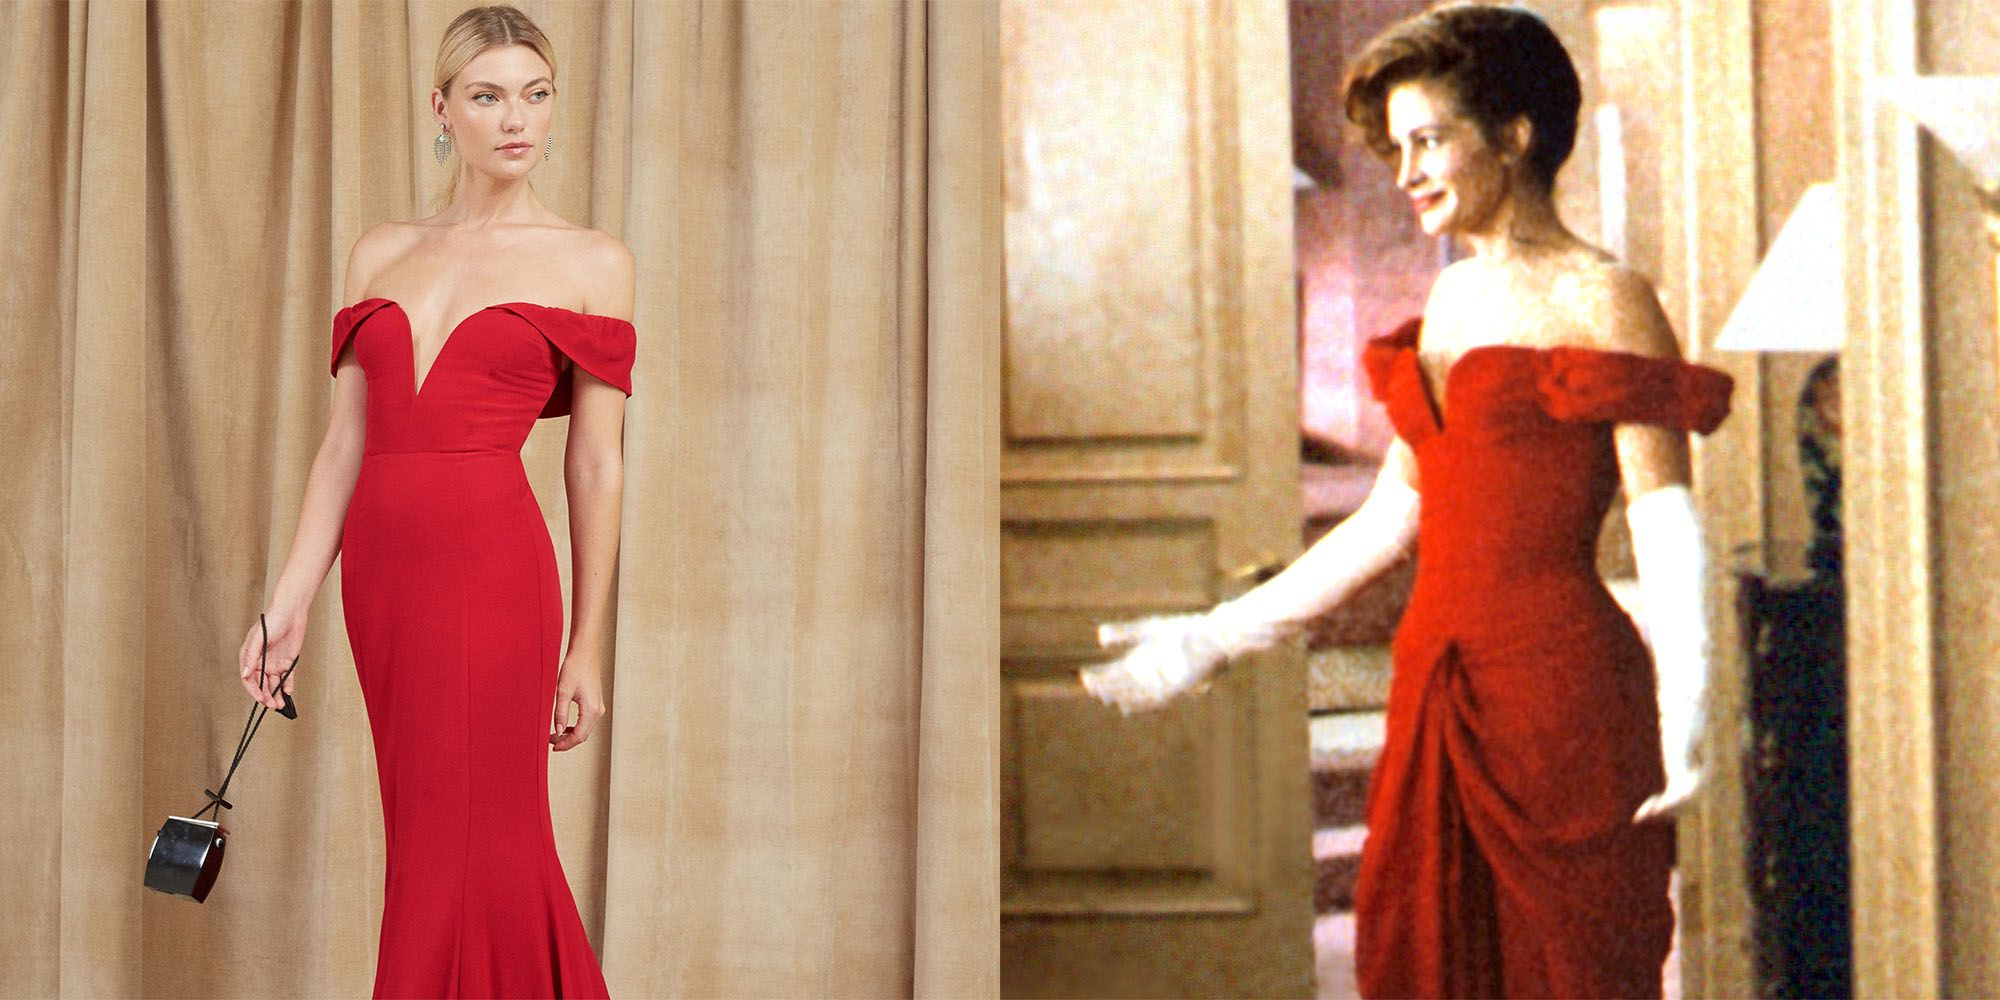 The Red Pretty Woman Dress Can Now Be Yours For 388